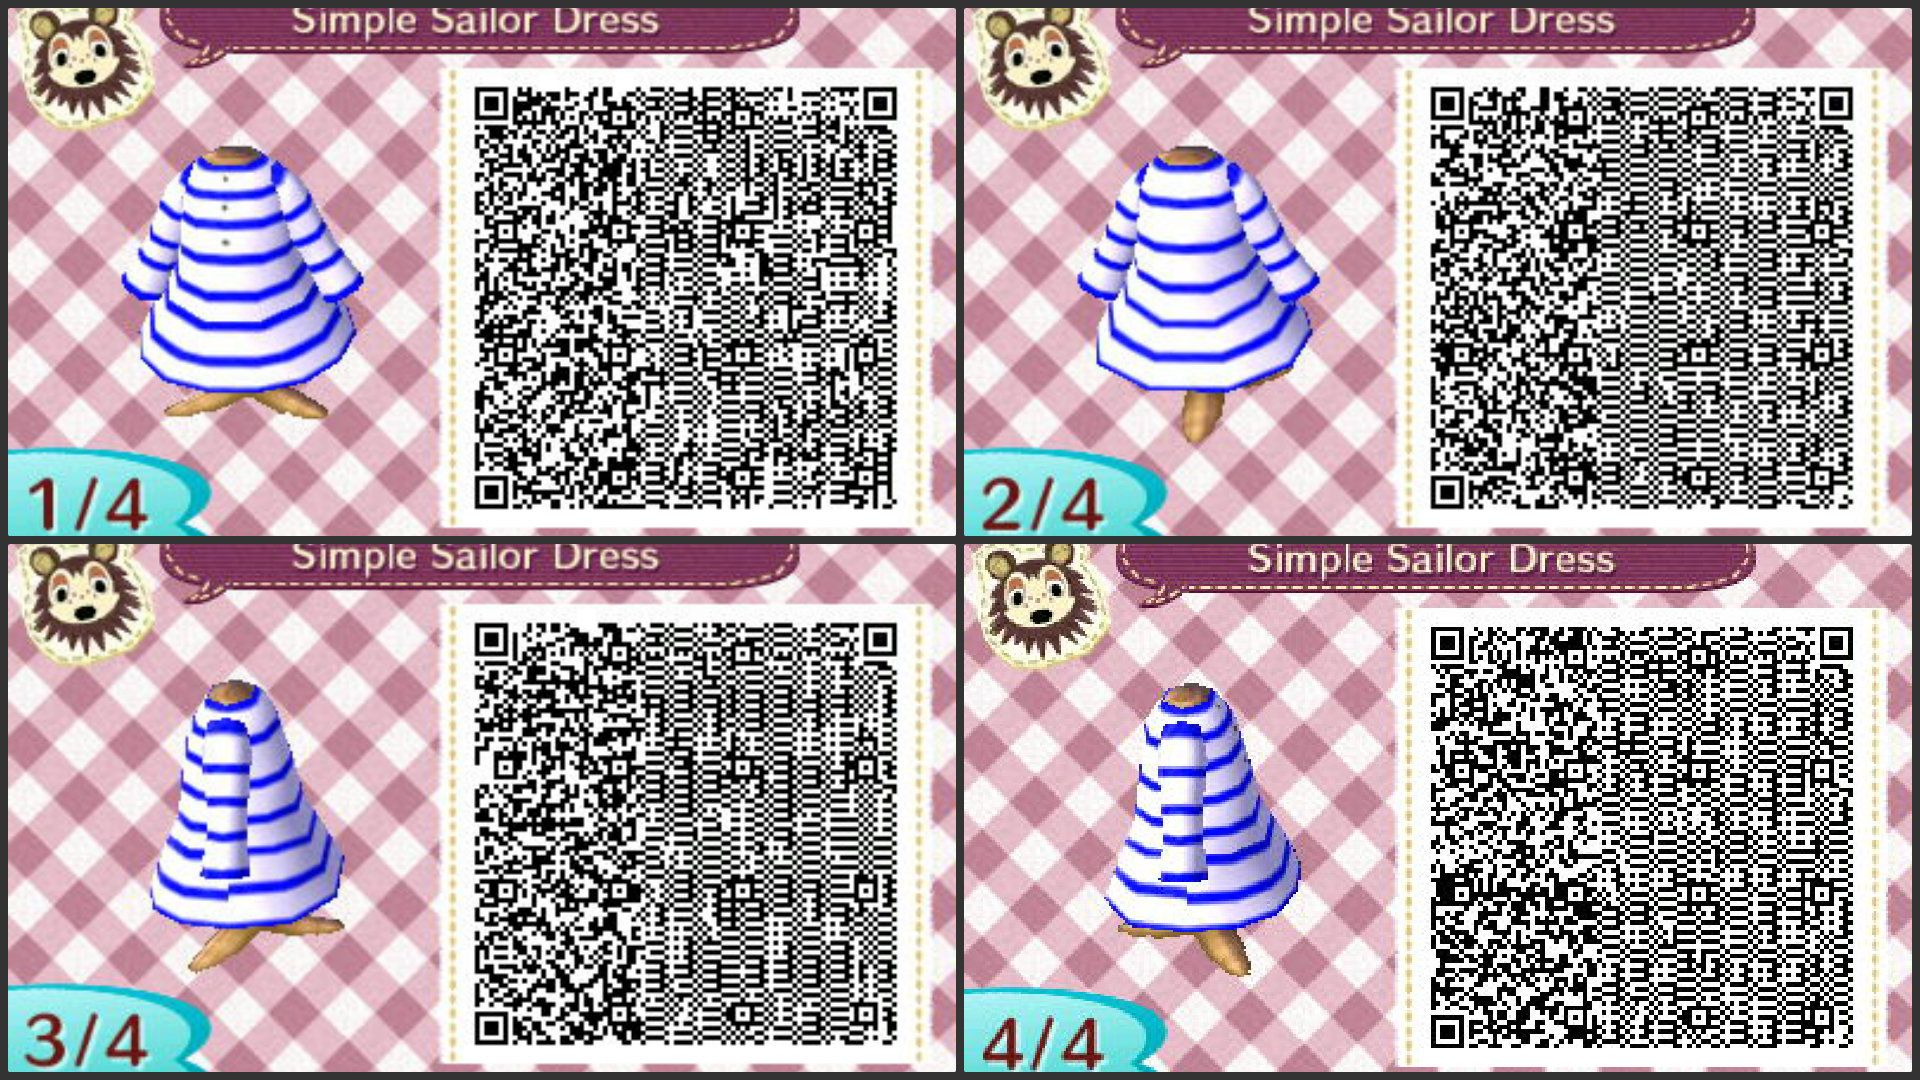 animal crossing new leaf simple sailor dress qr code. guess who